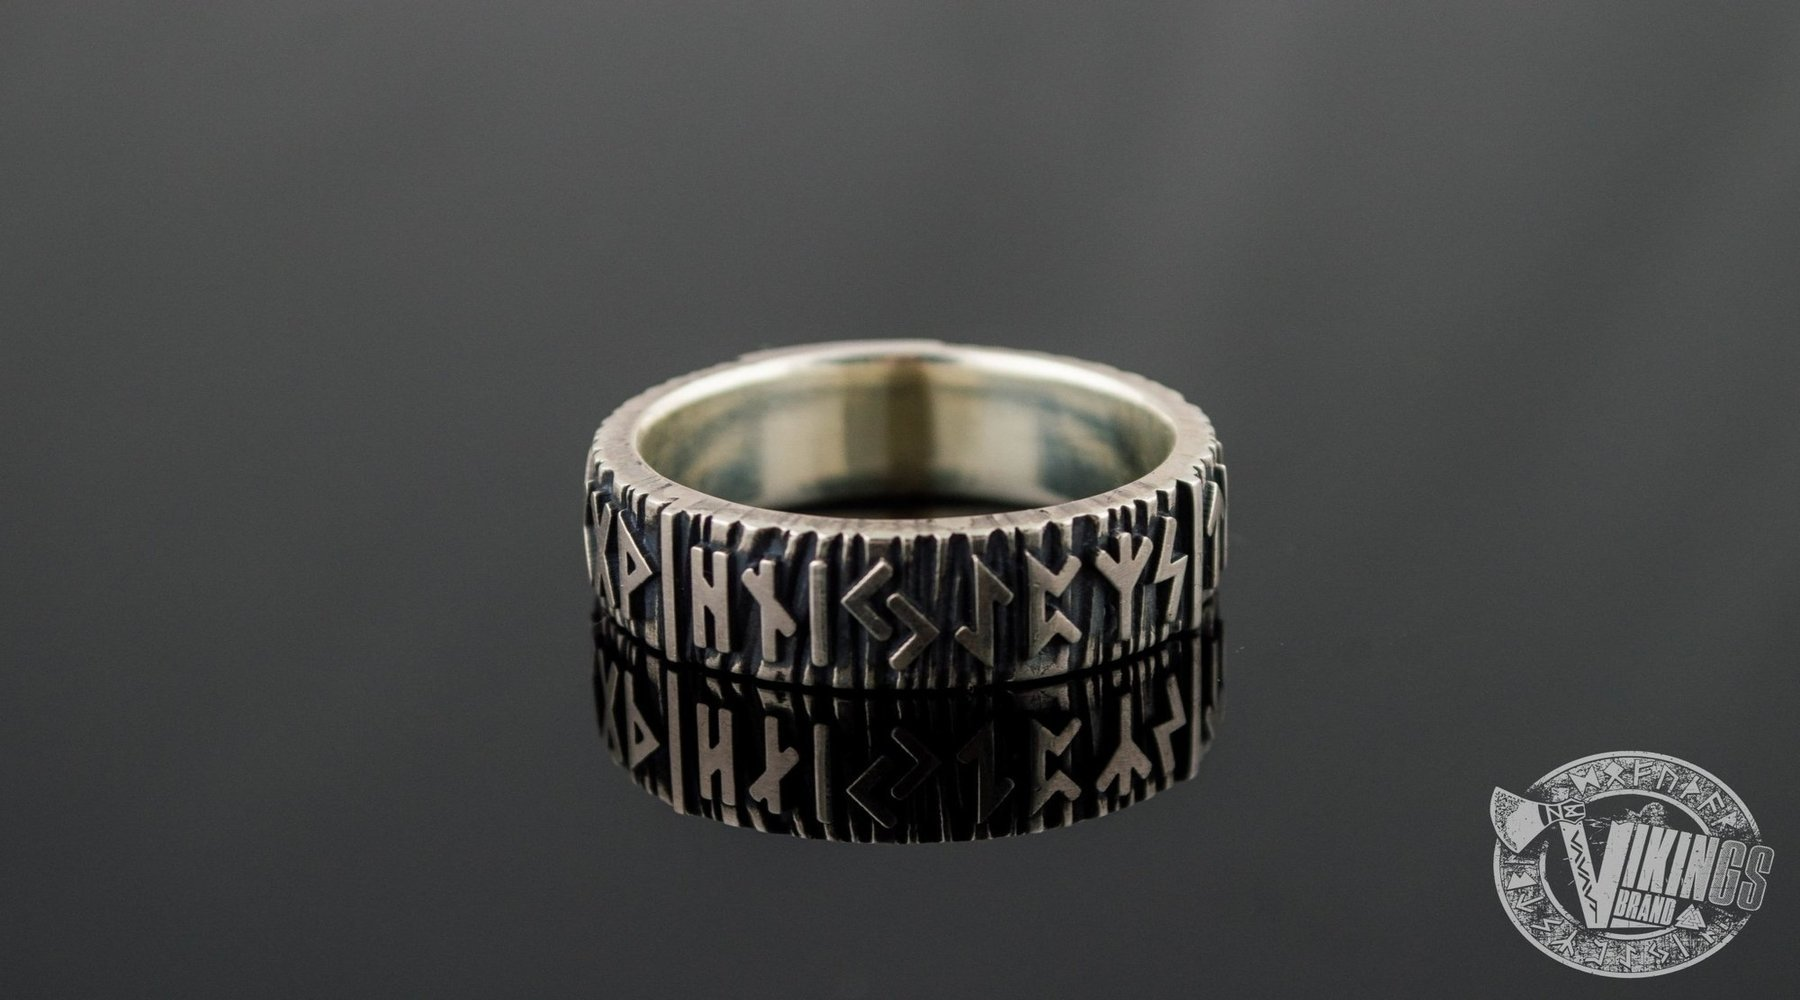 Elder futhark runes carved in a silver Viking ring on black background.